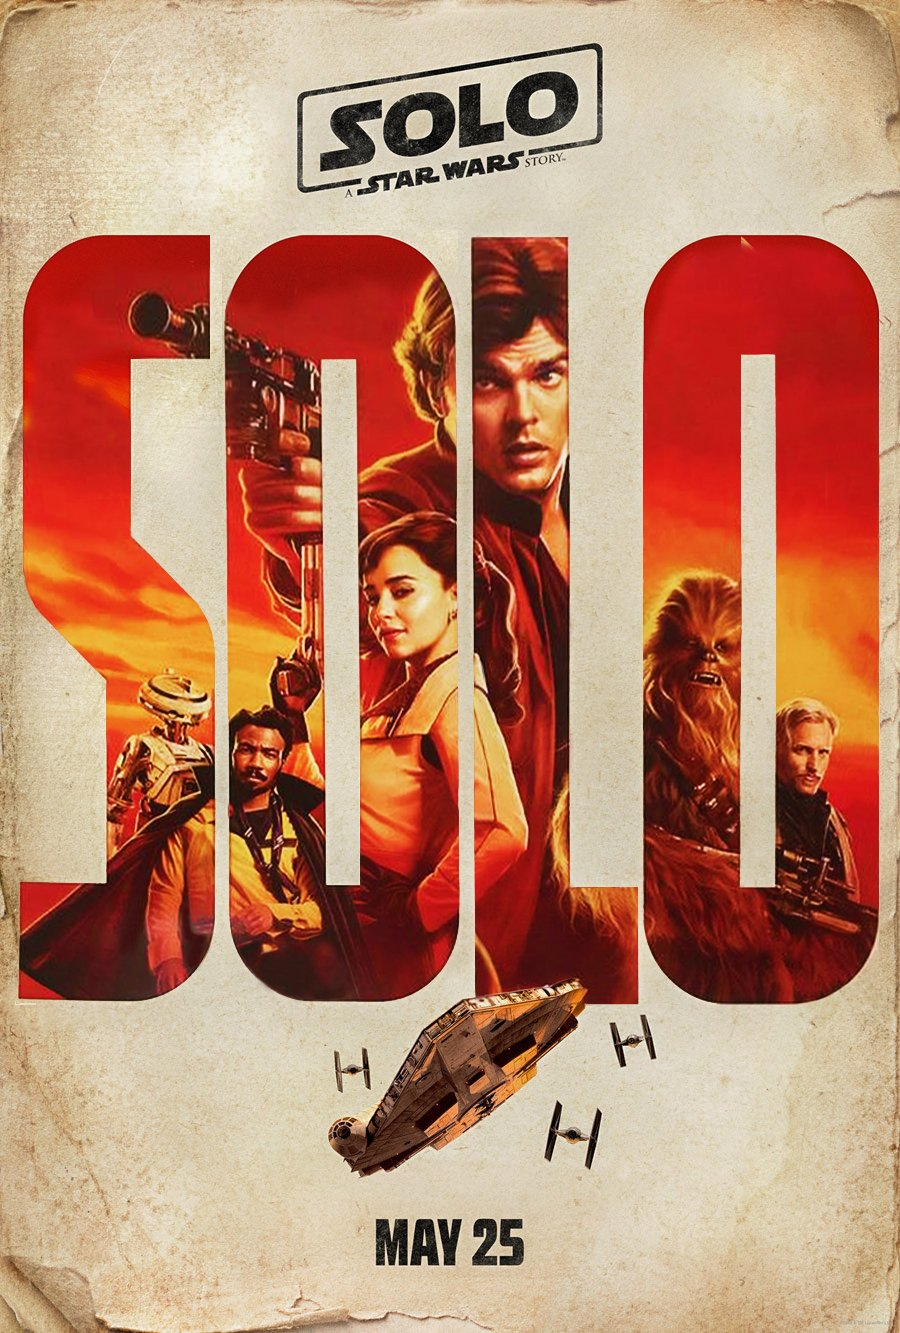 Solo Star Wars Story Movie Poster